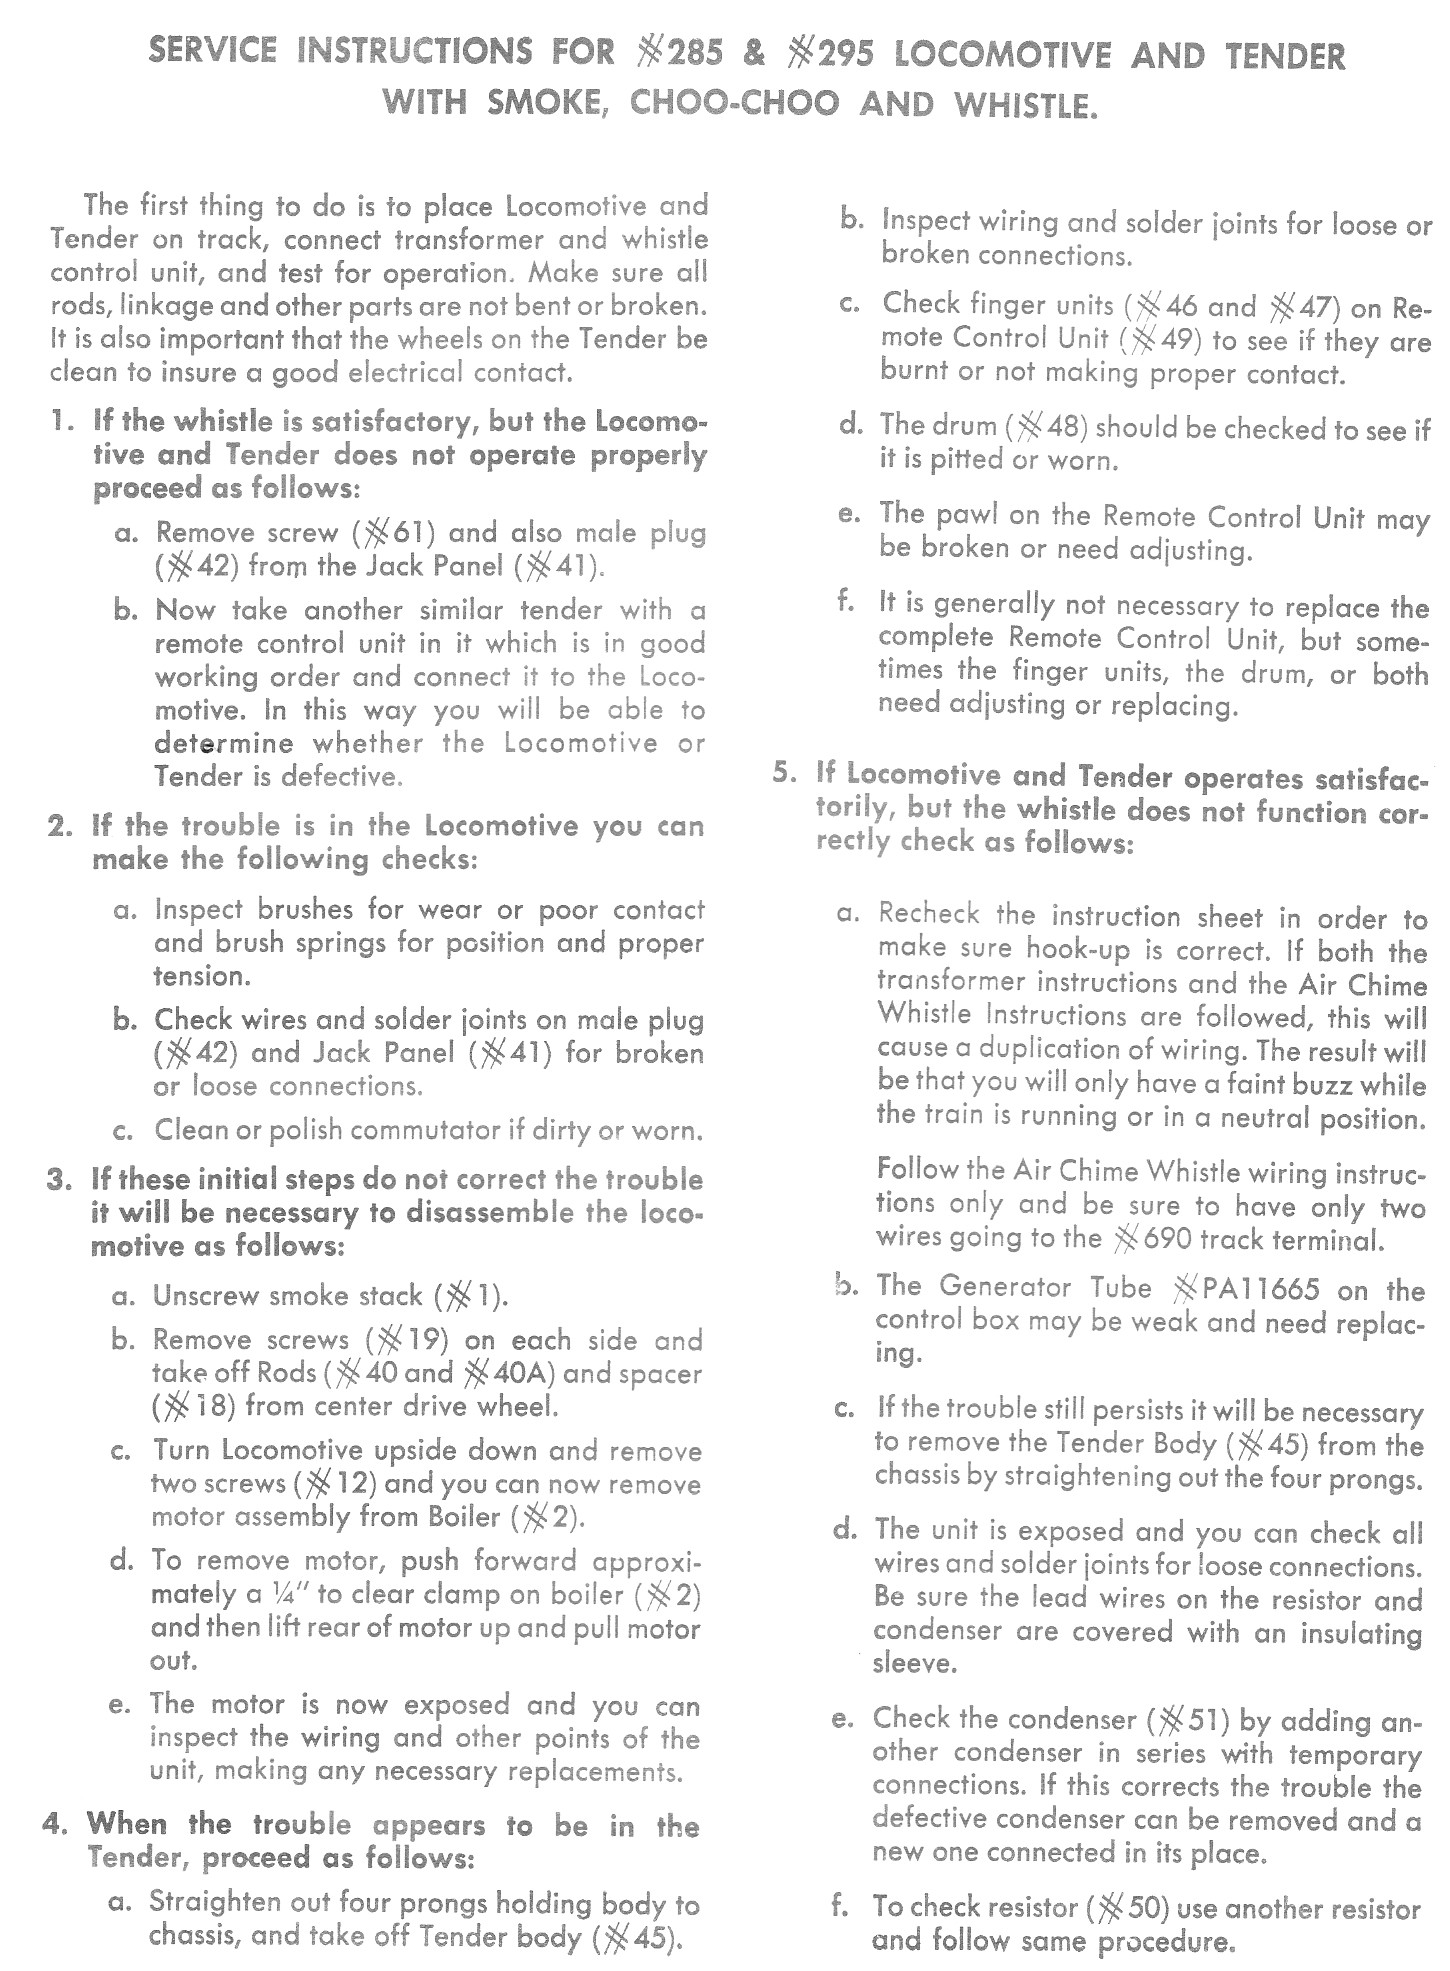 Service Instructions for No. 285 & 295 Locomotive and Tender with Smoke, Choo-Choo and Whistle